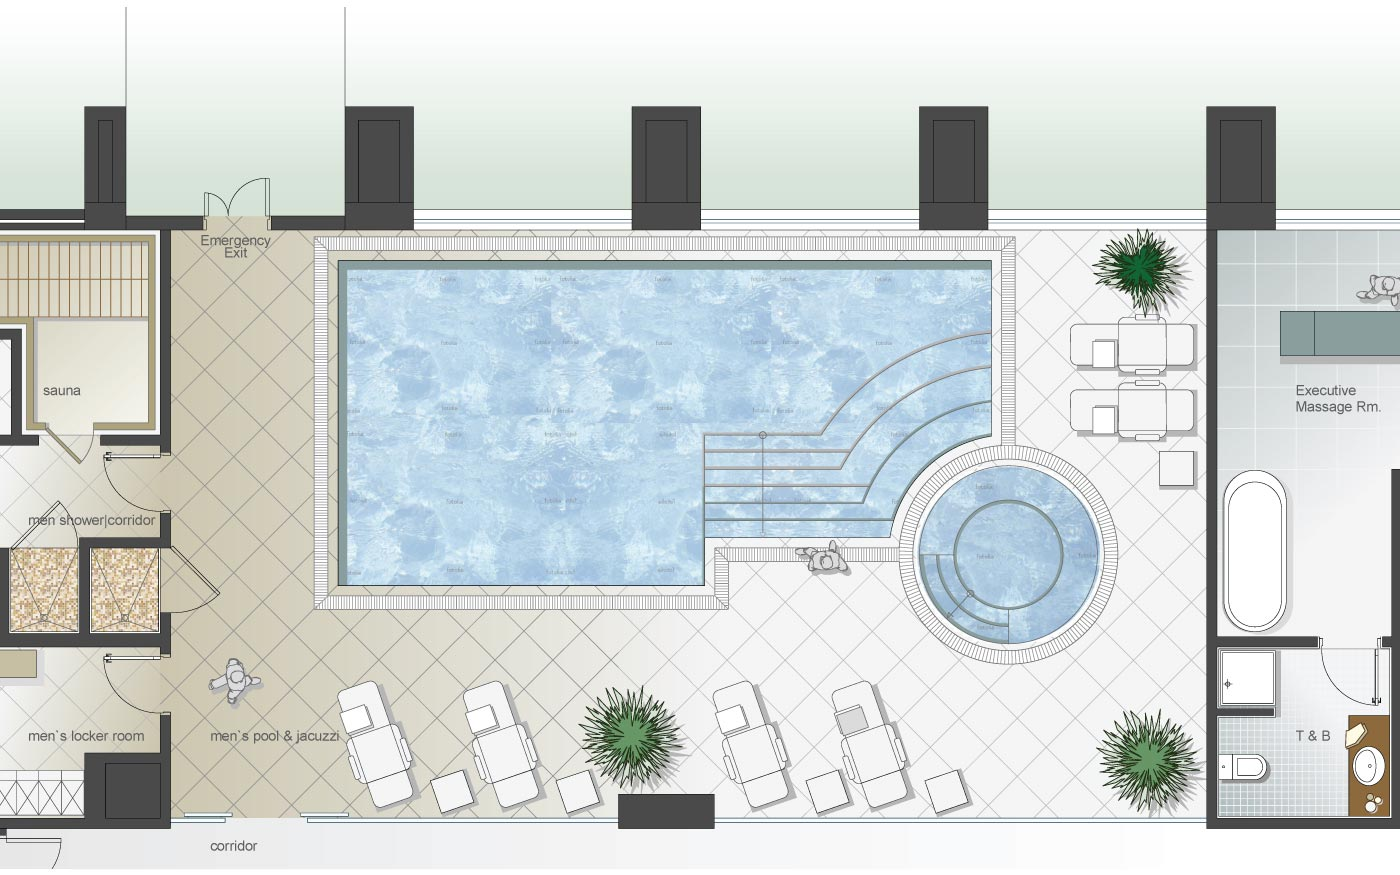 Hydro pool design planning and design unbescheiden for Pool design blueprints